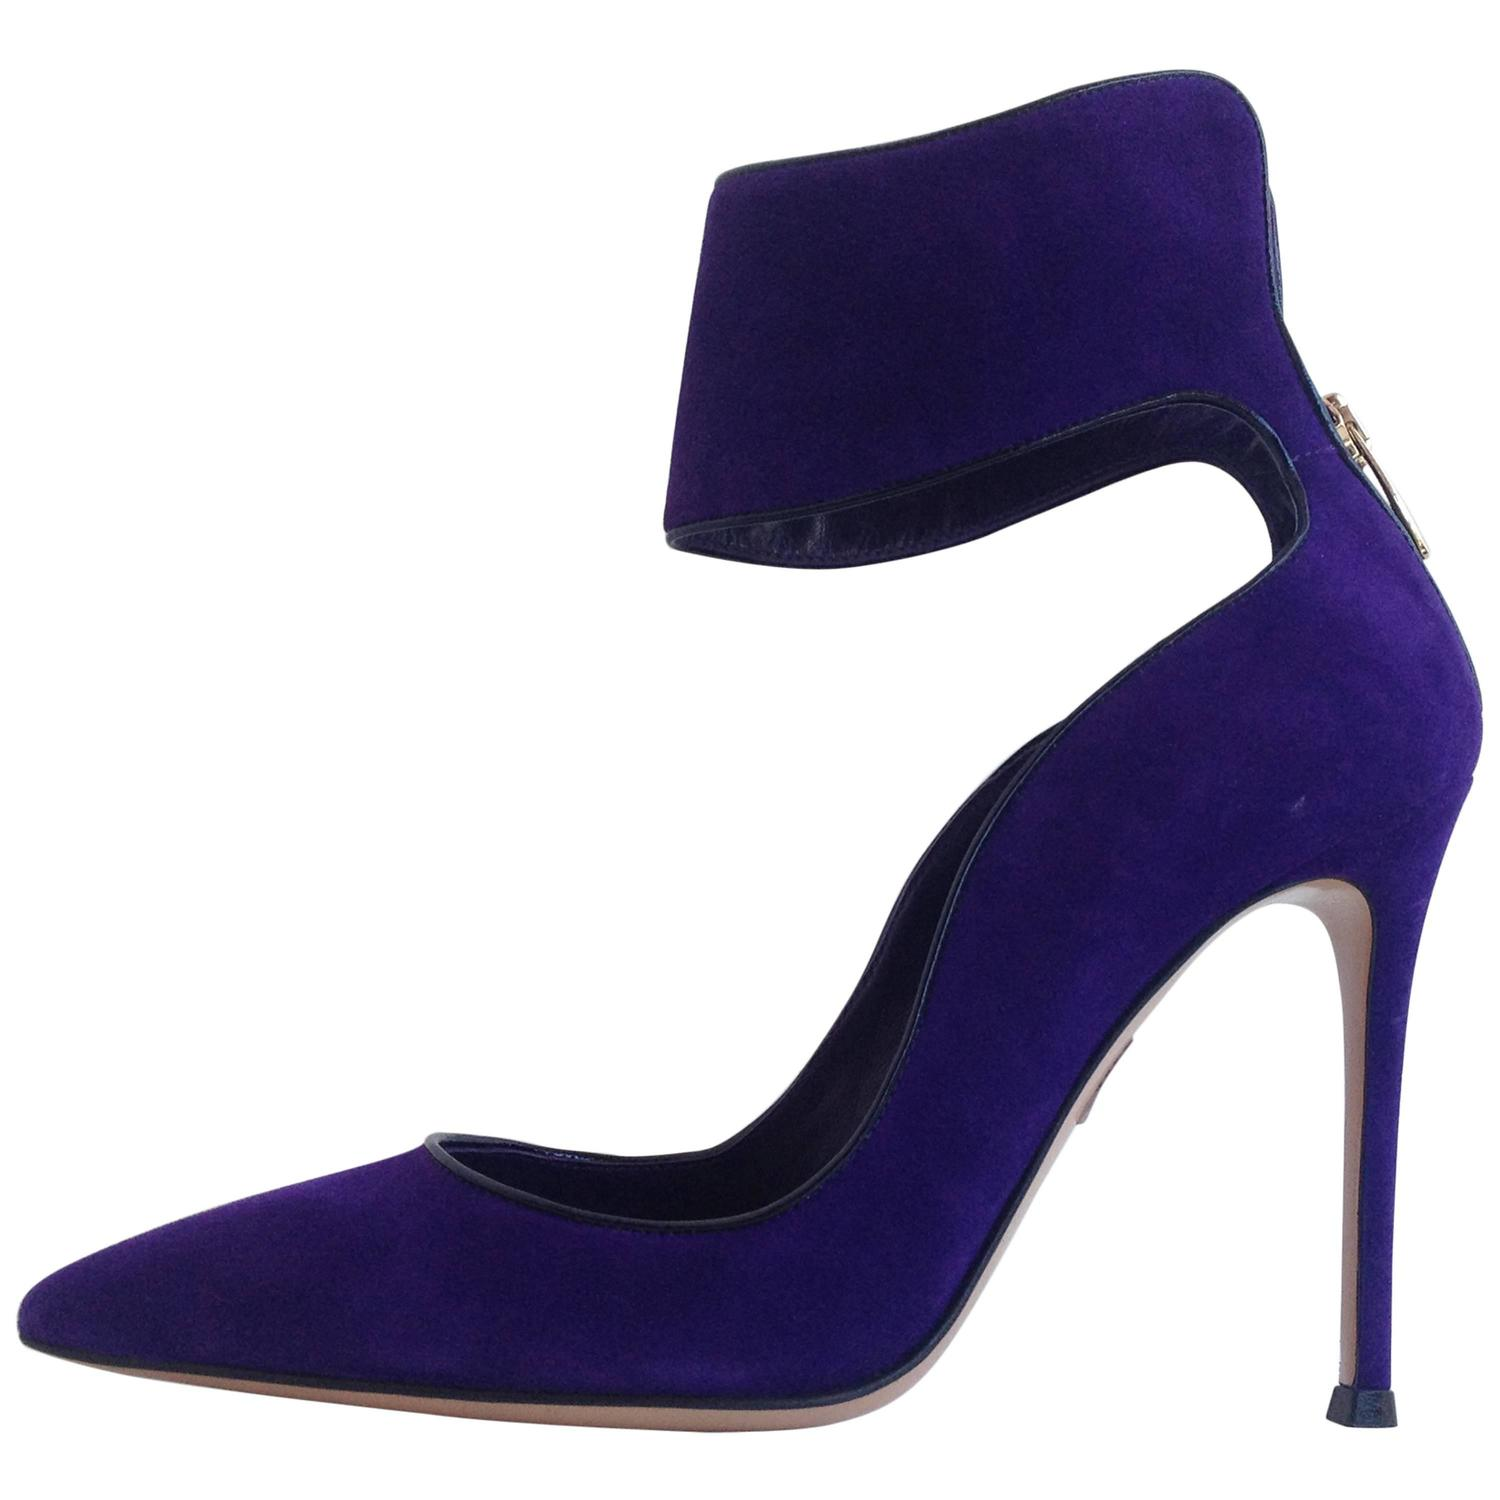 Gianvito Rossi Purple Suede Cuff Heels Size 37.5 (7) For Sale at ...